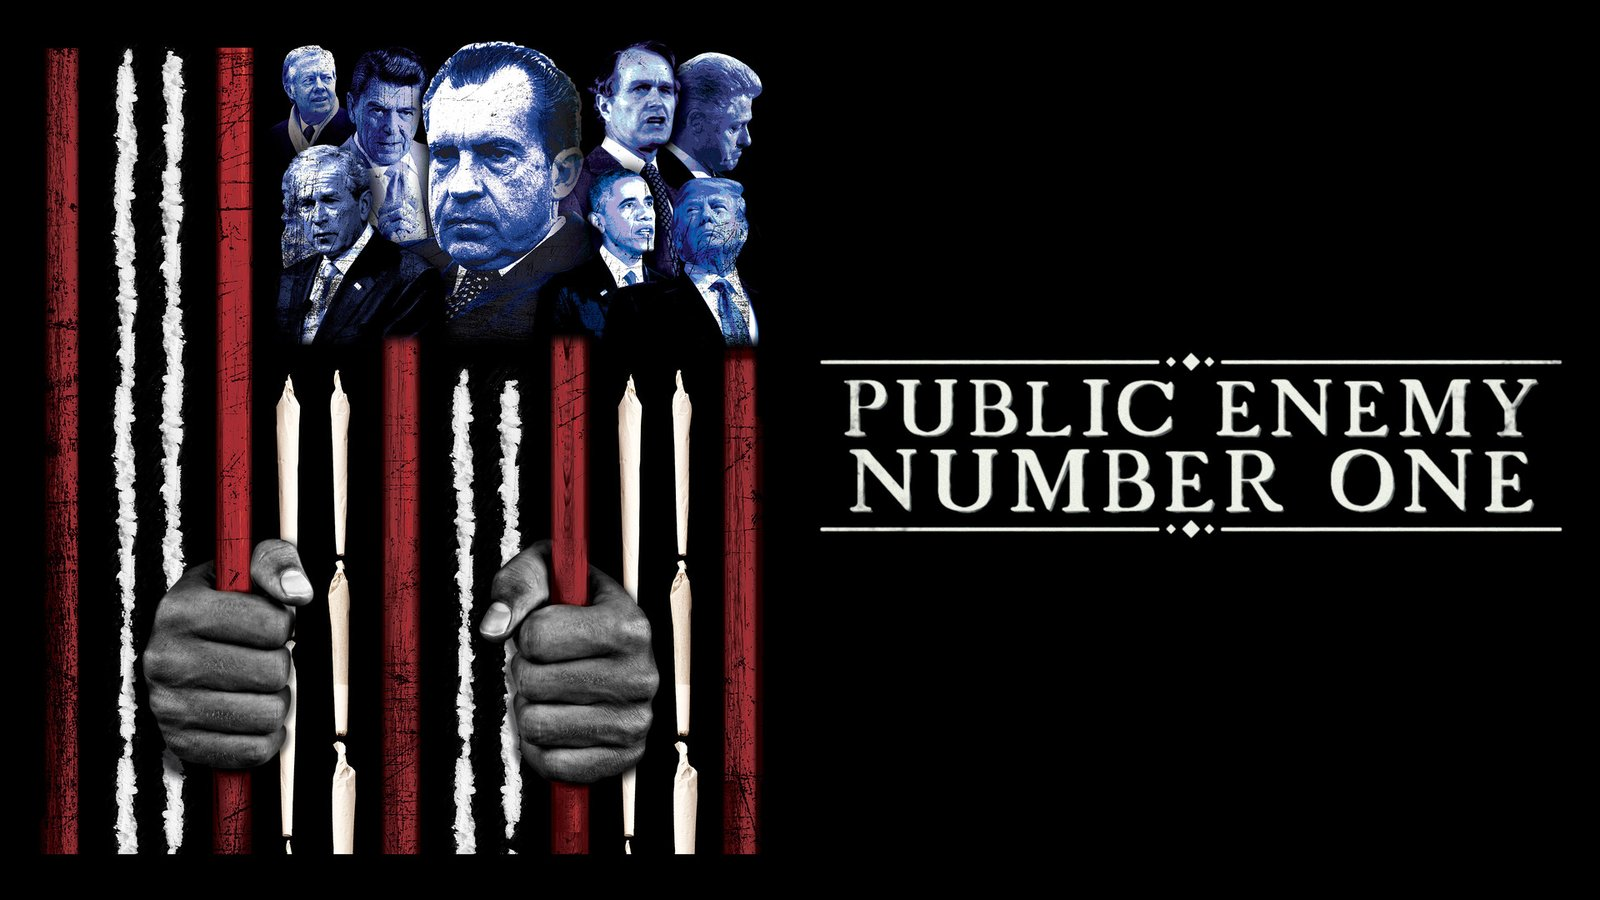 Public Enemy Number One